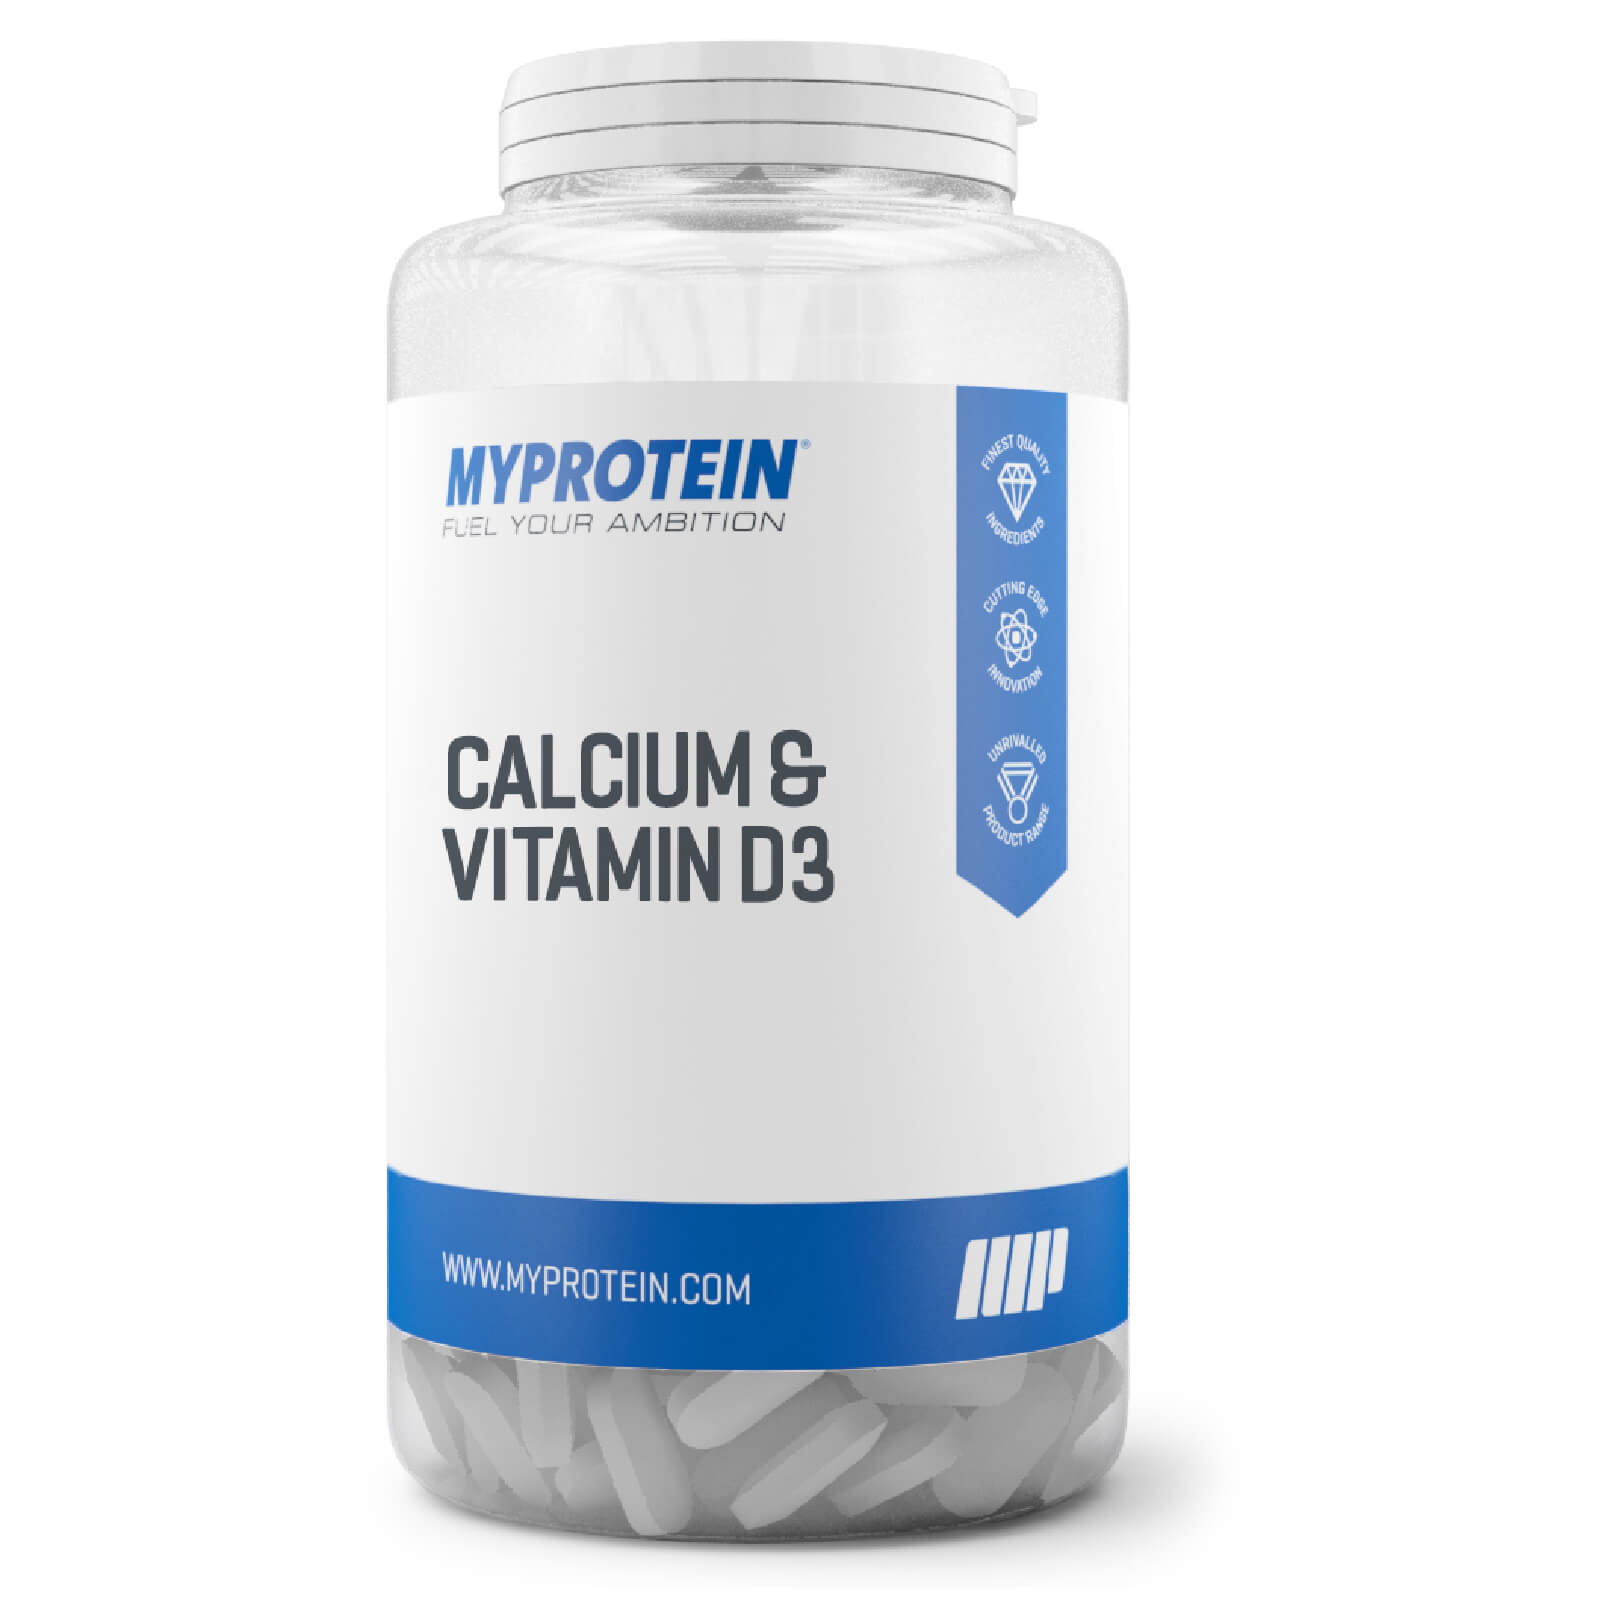 Calcium & Vitamin D3, 60 Tablets